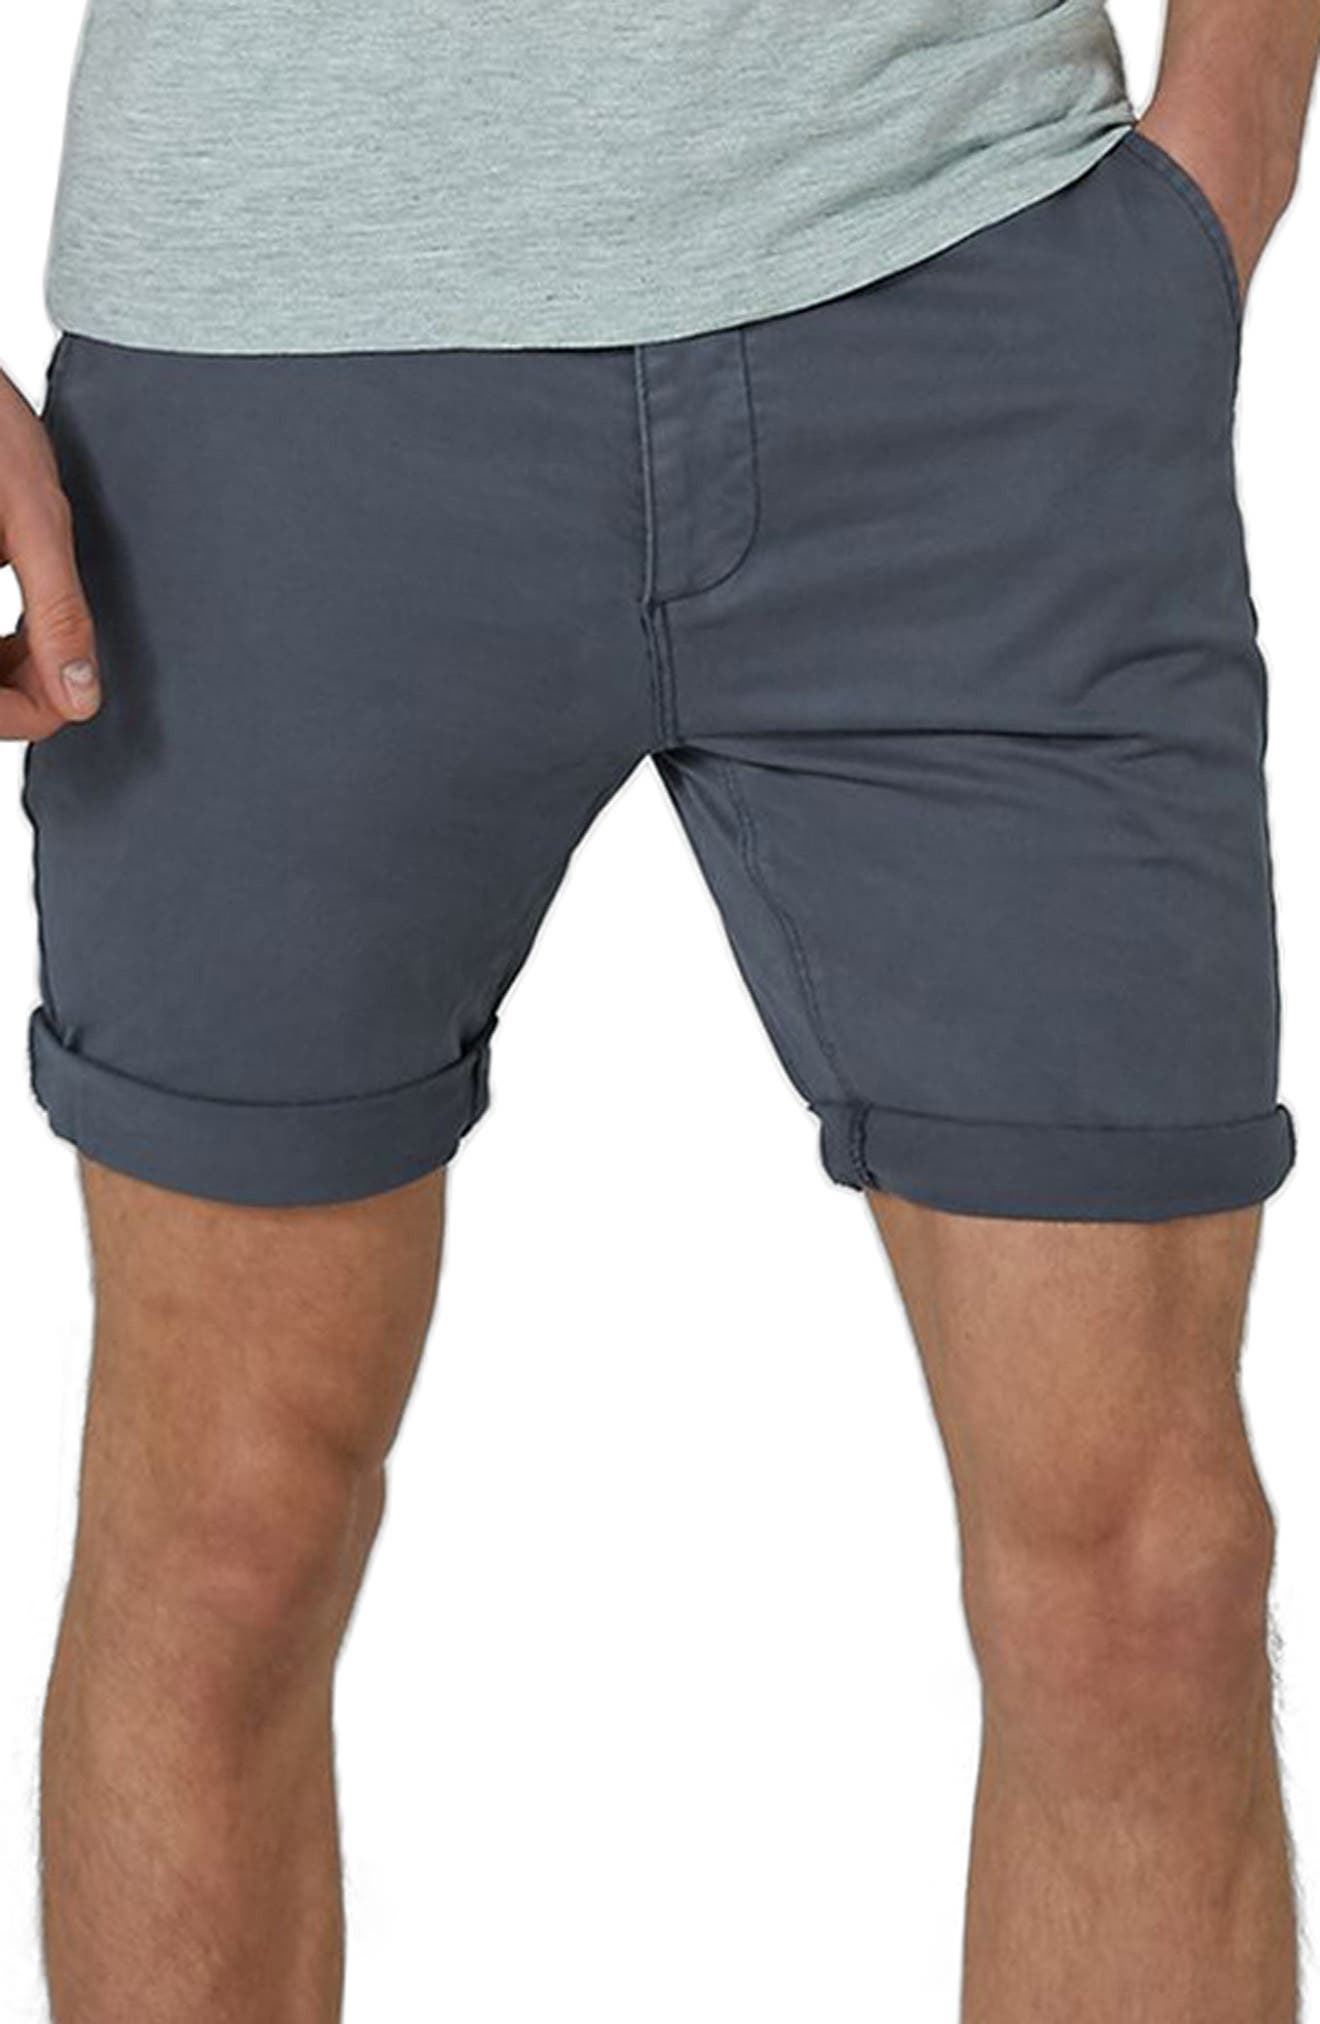 Stretch Skinny Chino Shorts,                         Main,                         color, Dark Blue